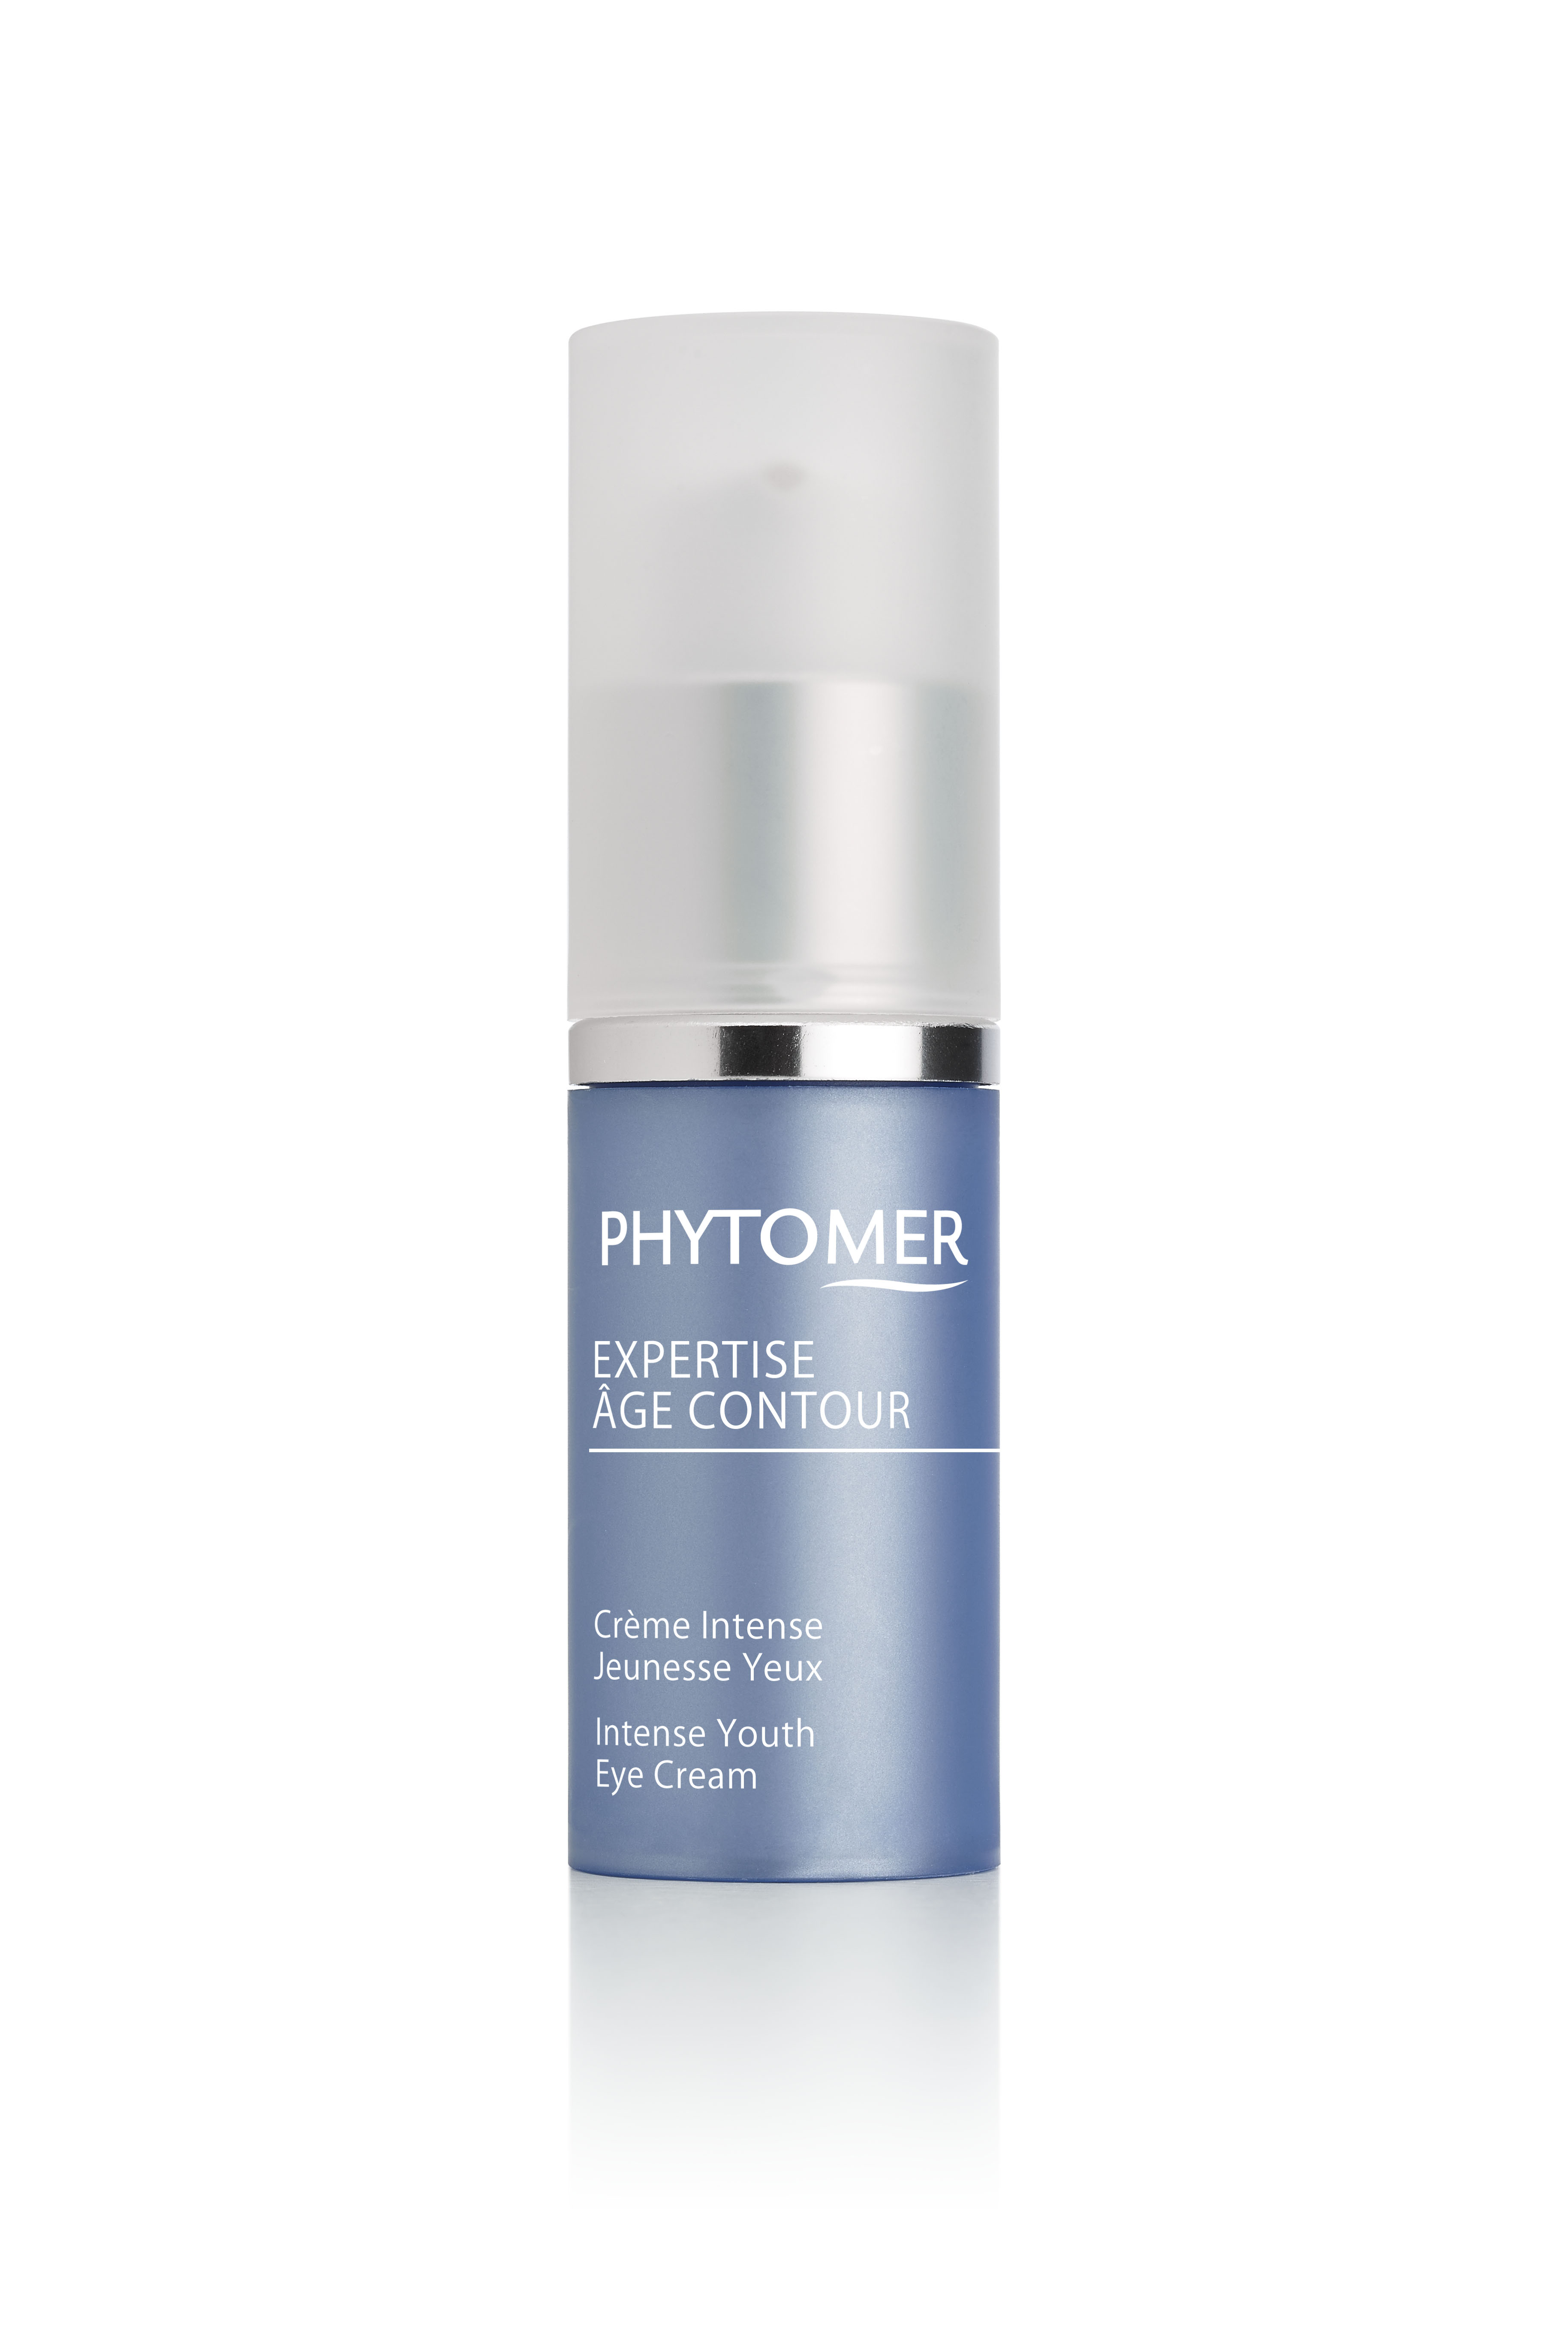 Phytomer Expertise Age Contour - The Waters Spa